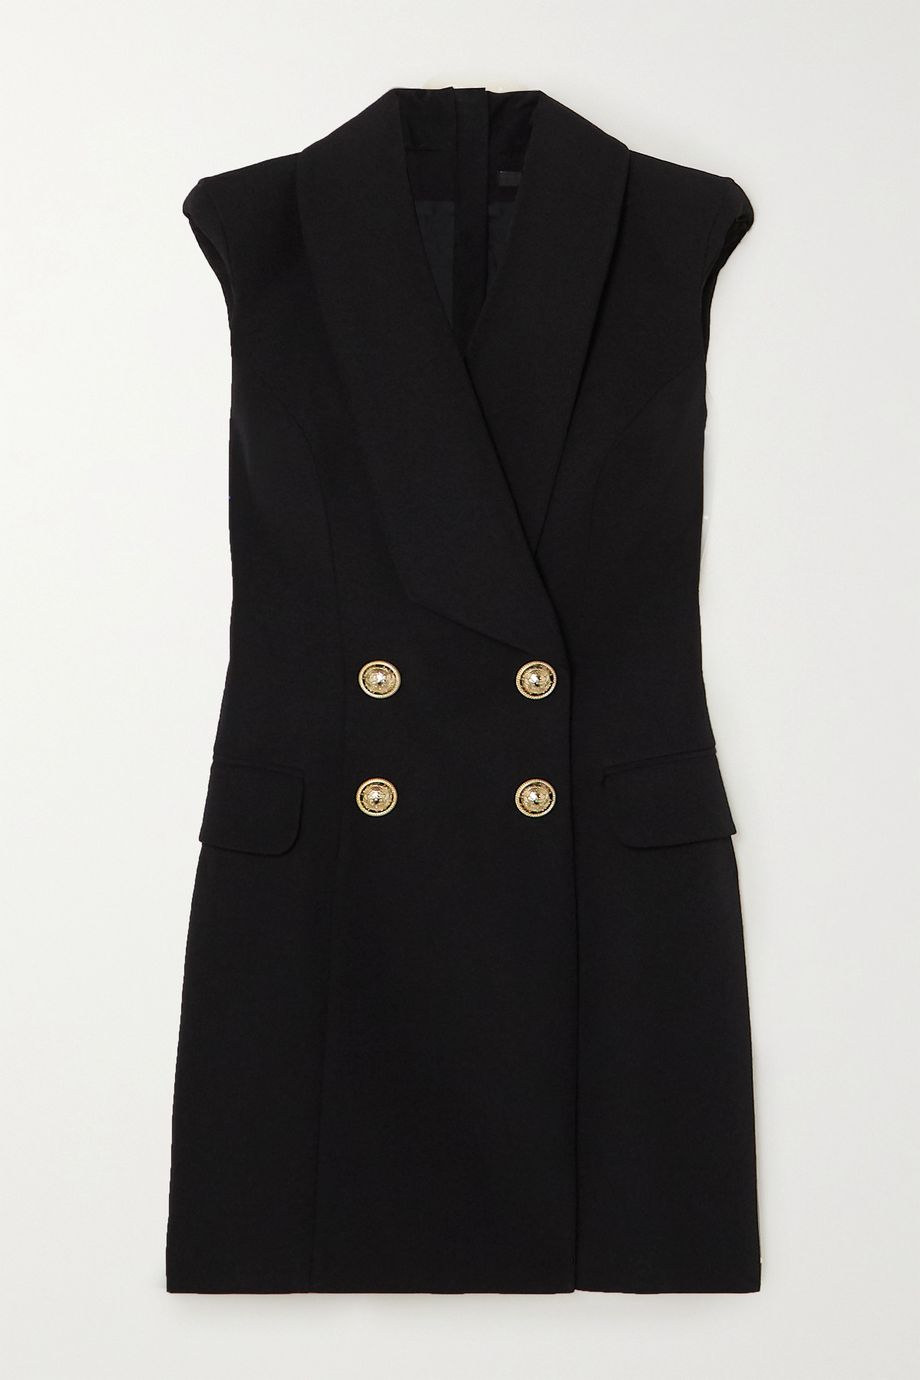 Balmain Button-embellished grain de poudre wool mini dress